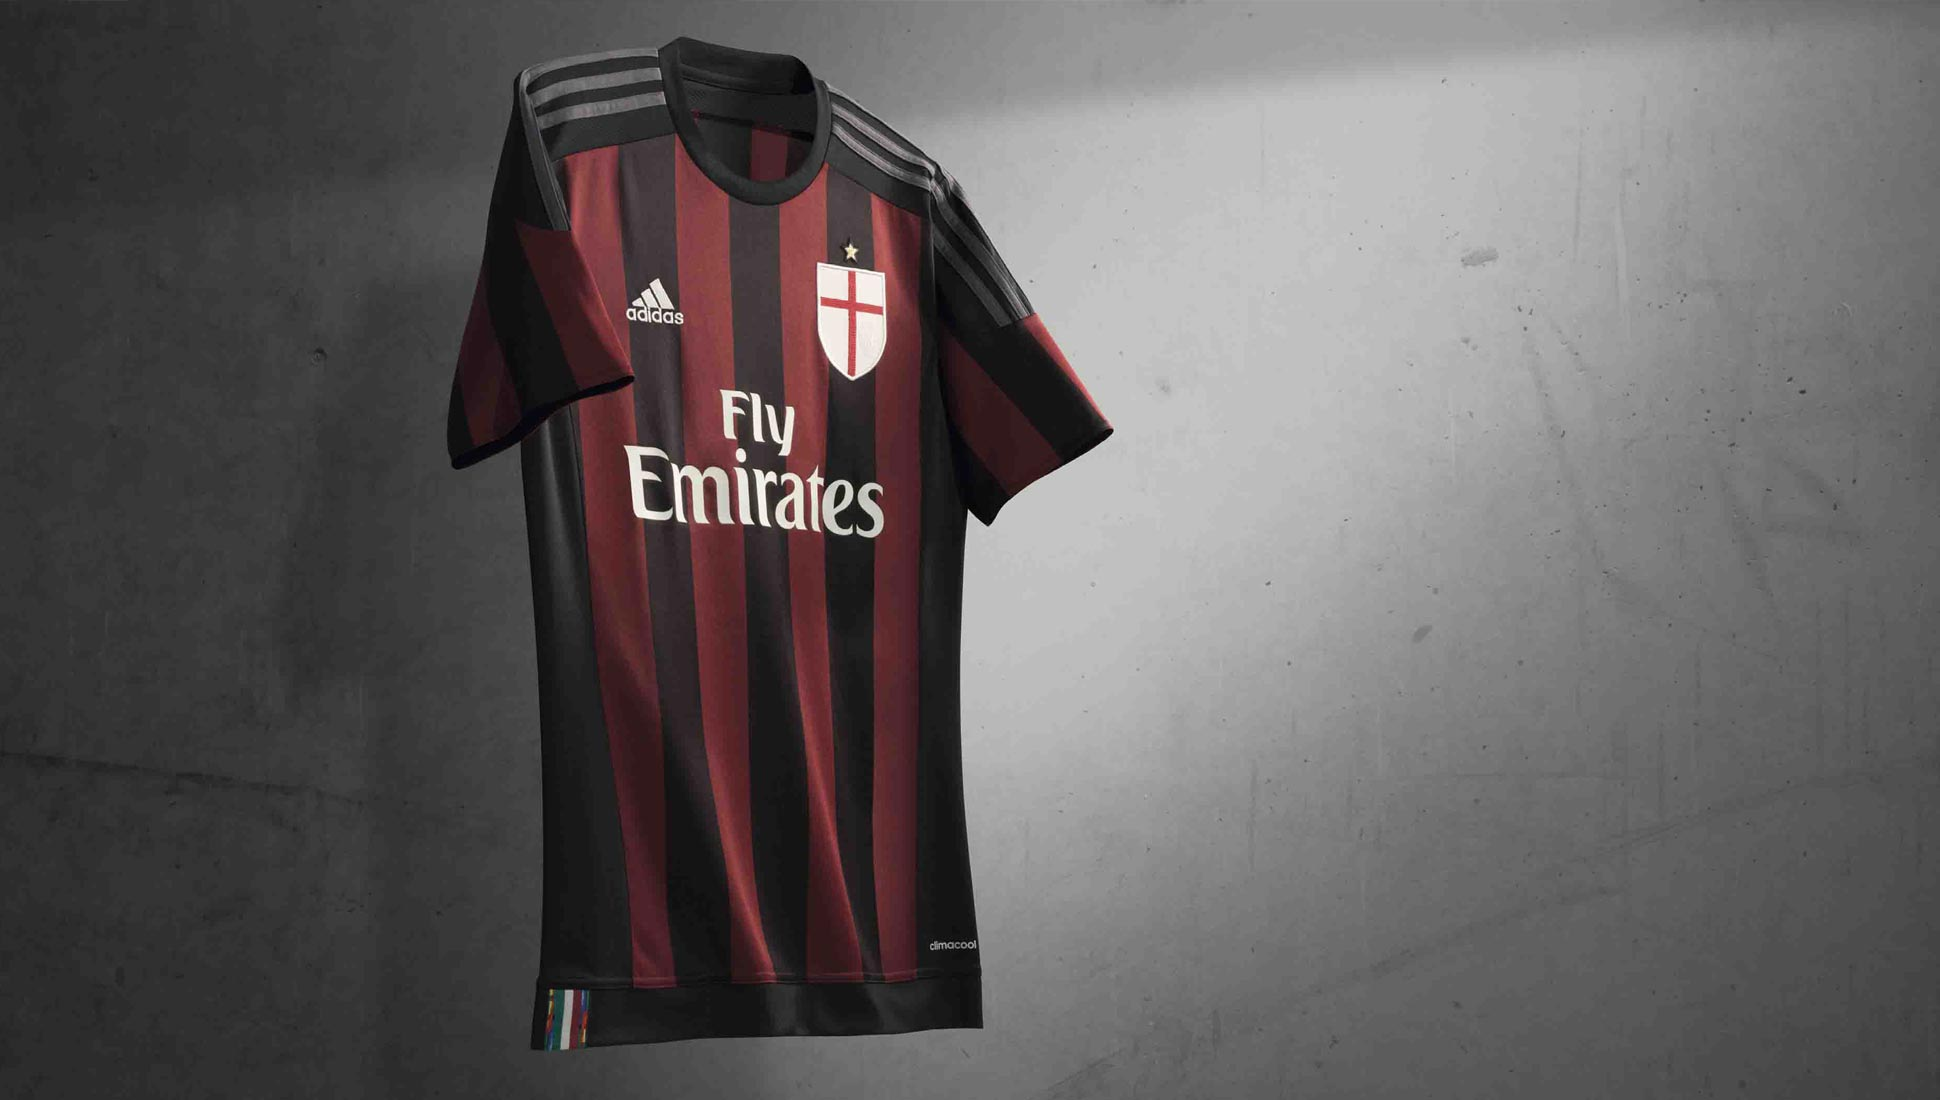 buy online 09d09 42e59 adidas 2015/16 AC Milan Home Kit - SoccerBible